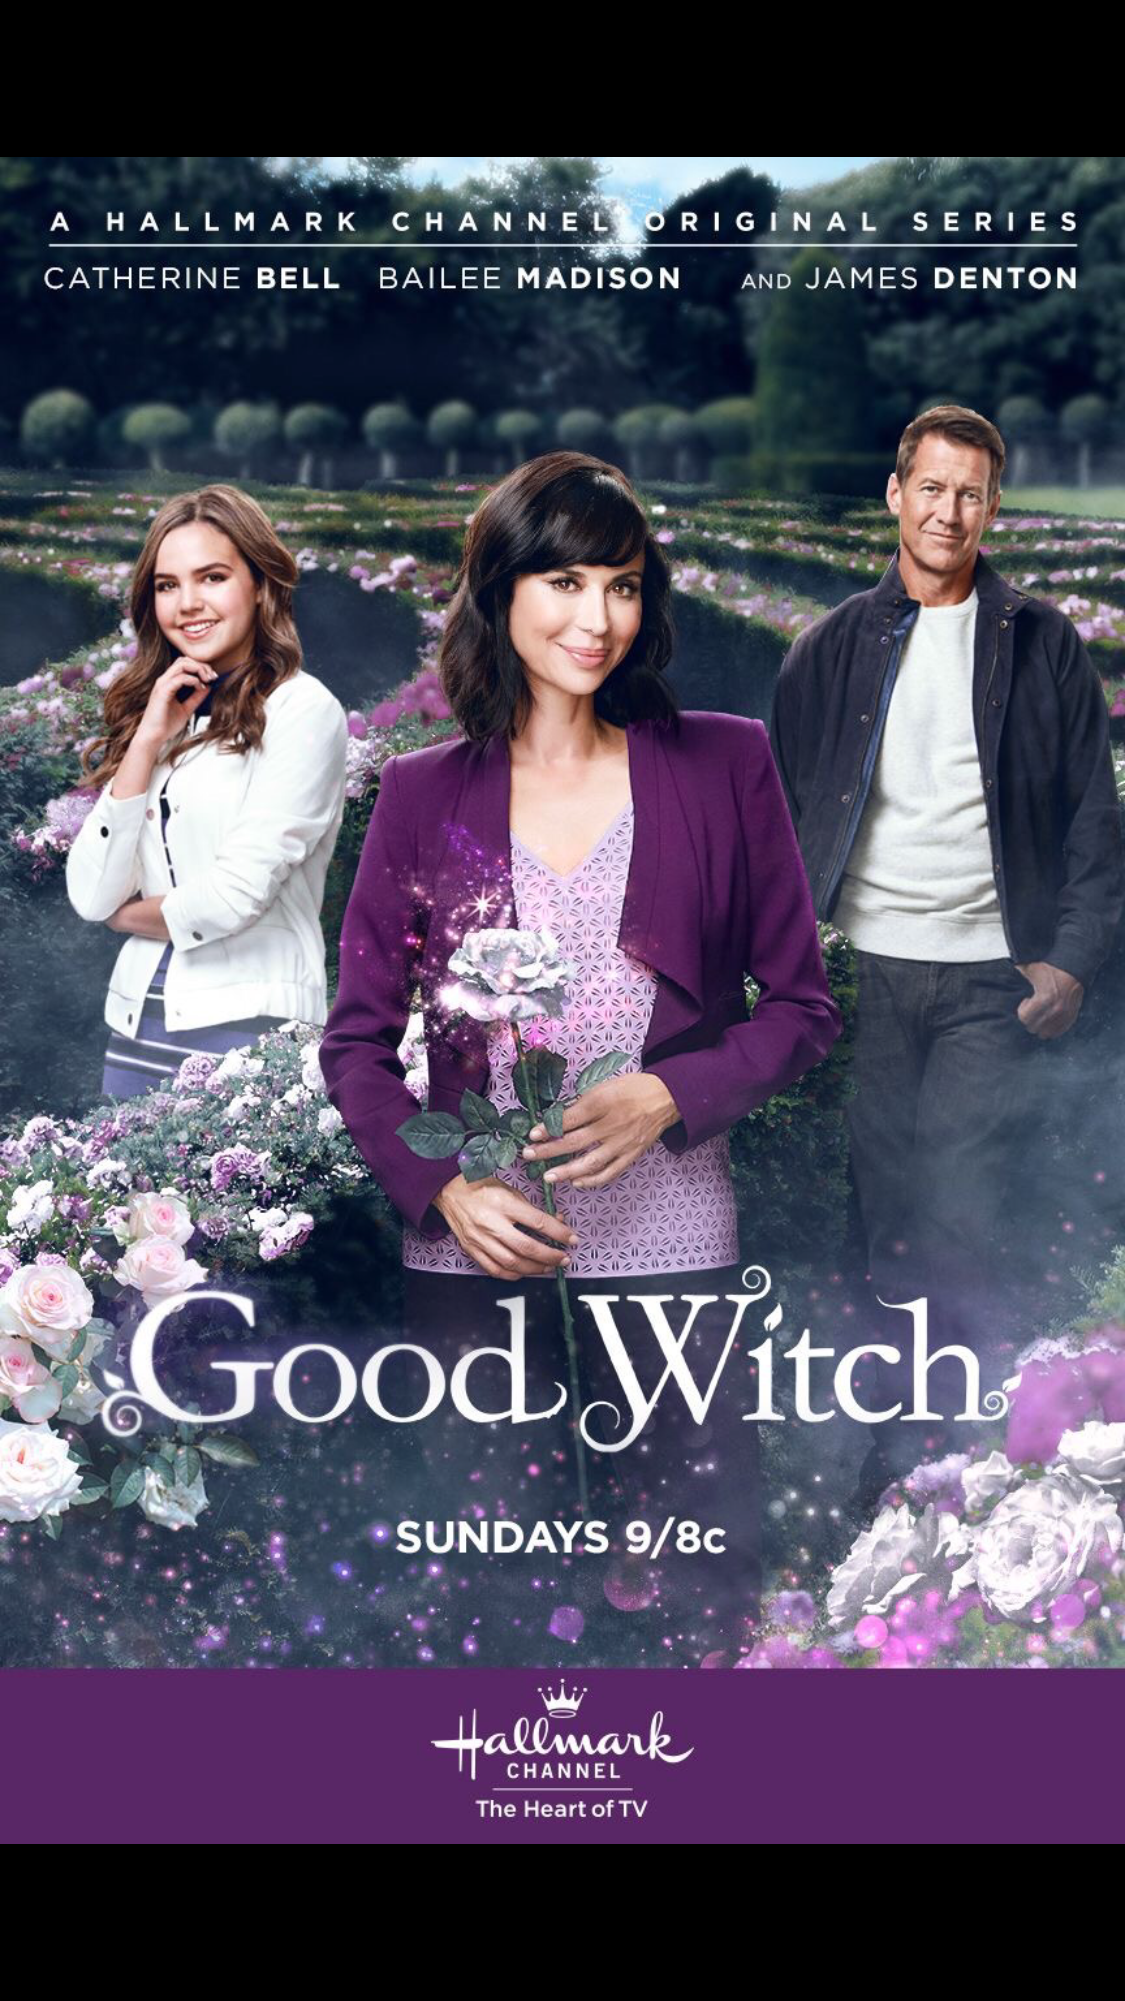 Pin by Douglas Bruce on Netflix in 2019 | The good witch